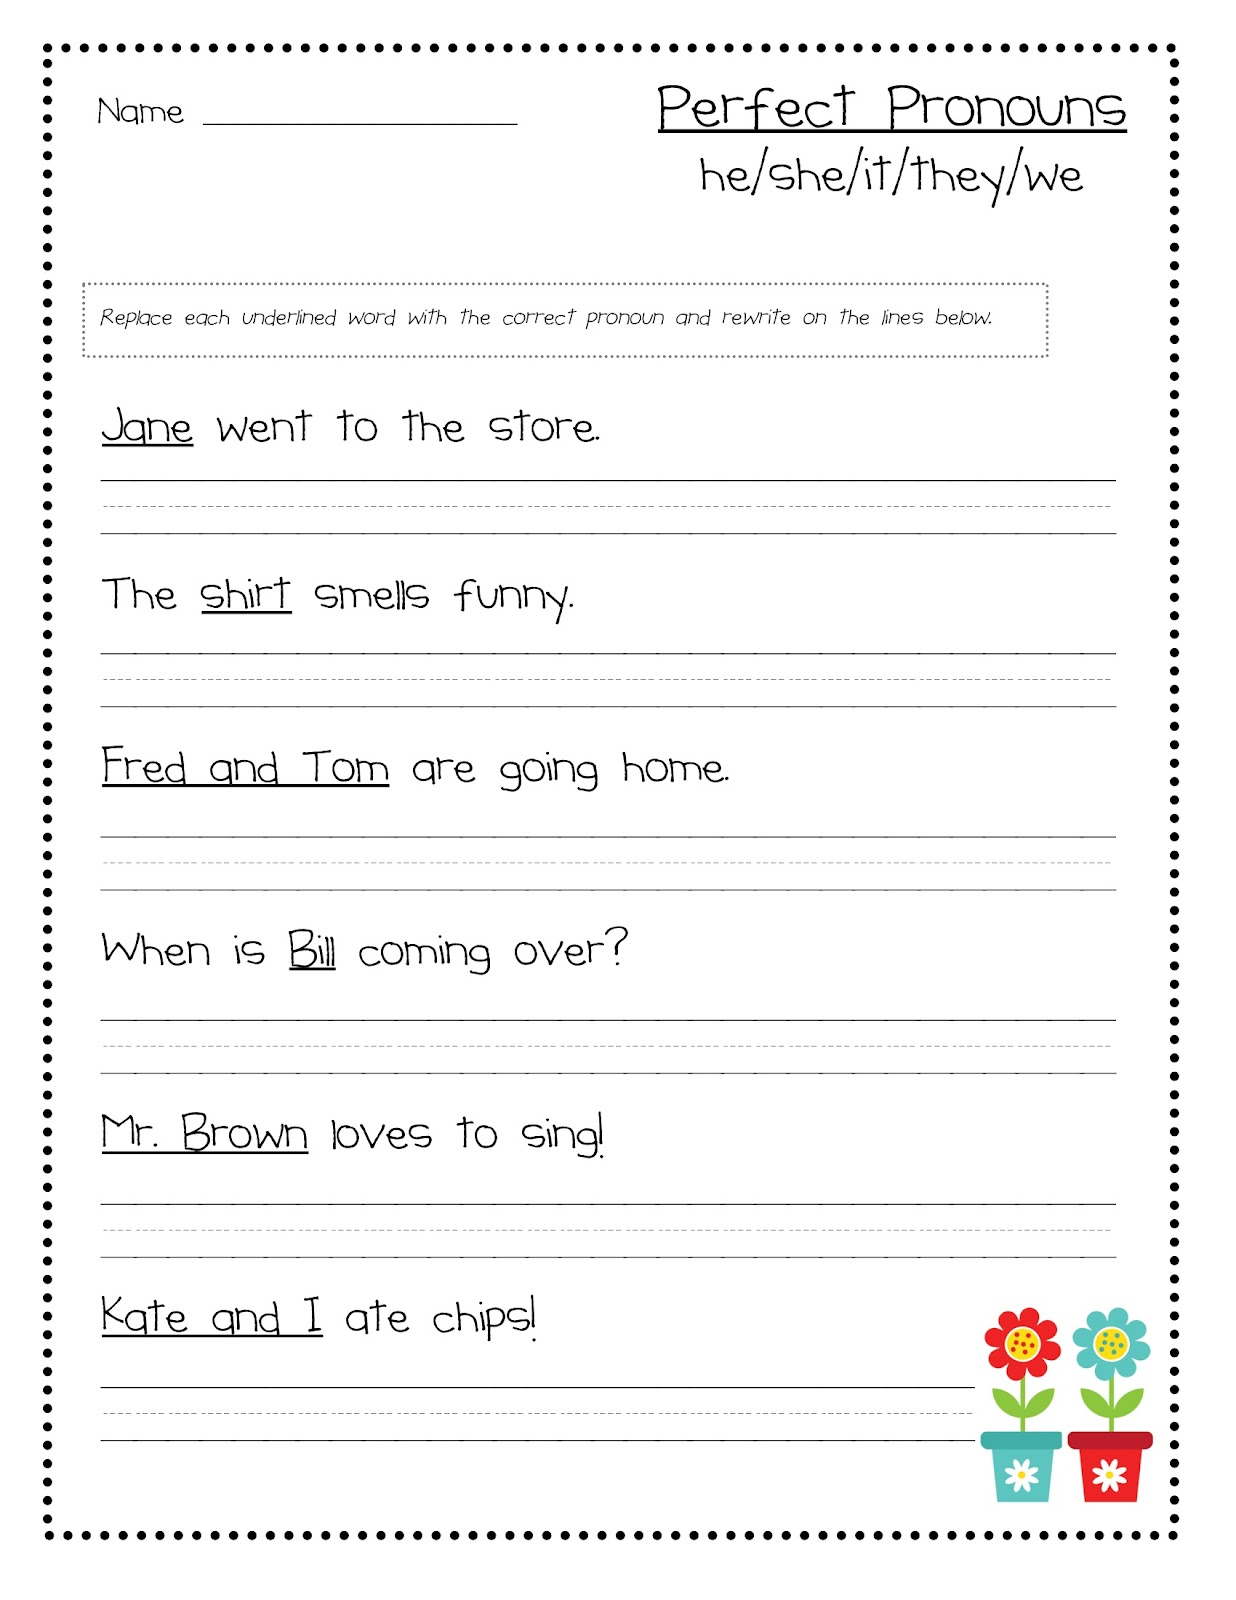 Pronoun Worksheet Answers Grade 4